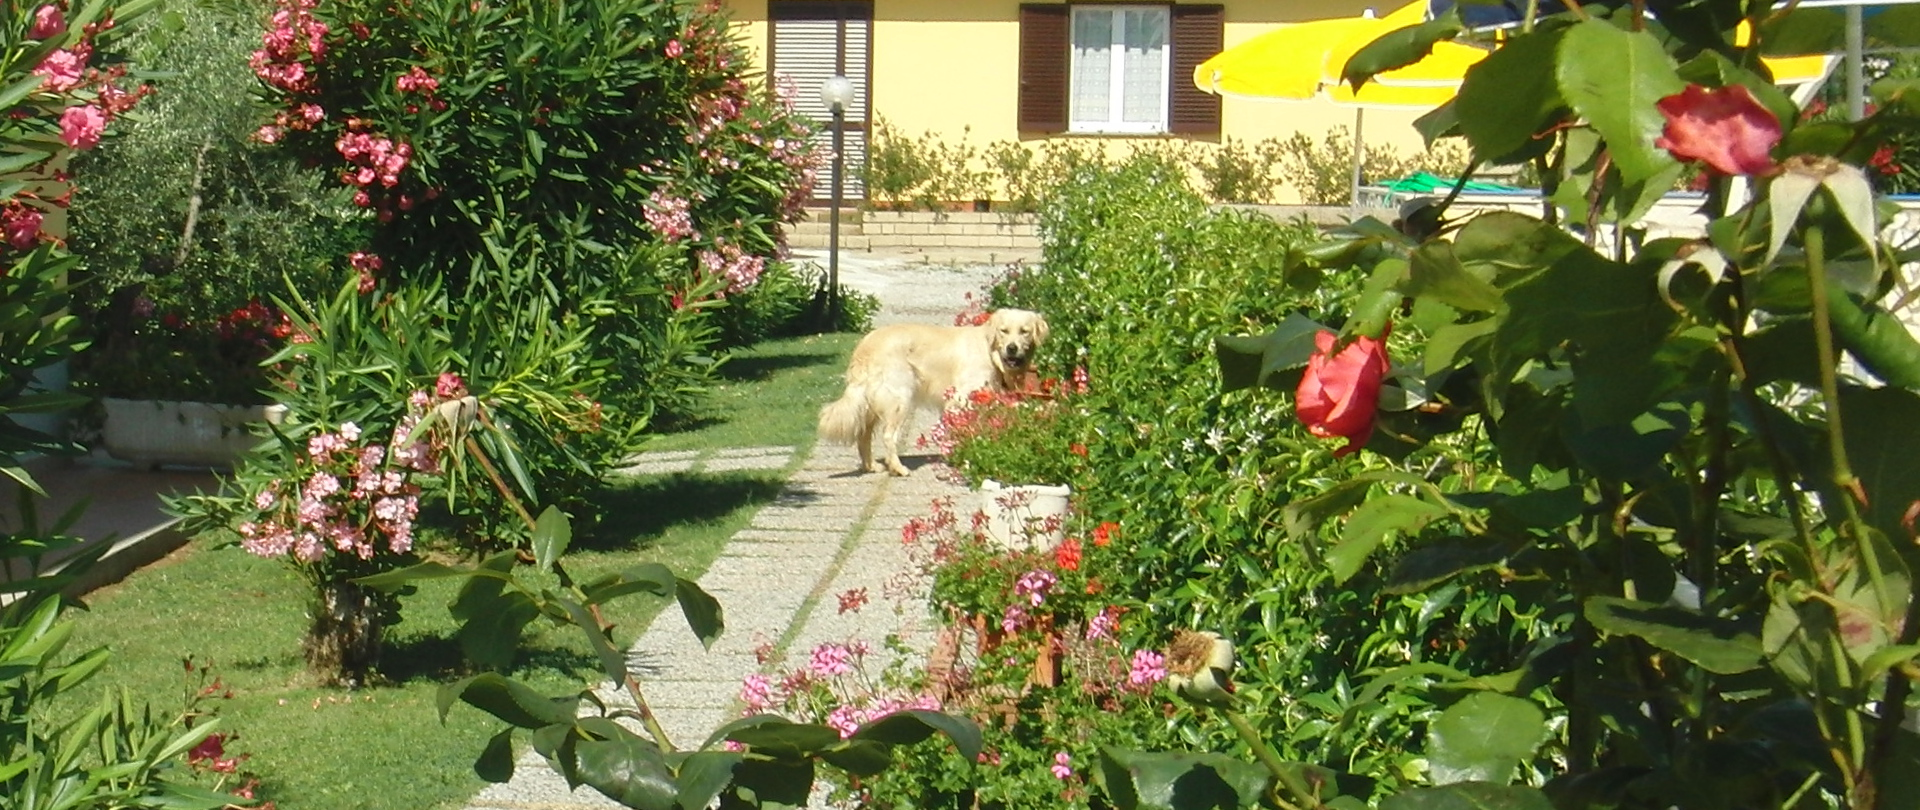 Agriturismo pet friendly a Vada